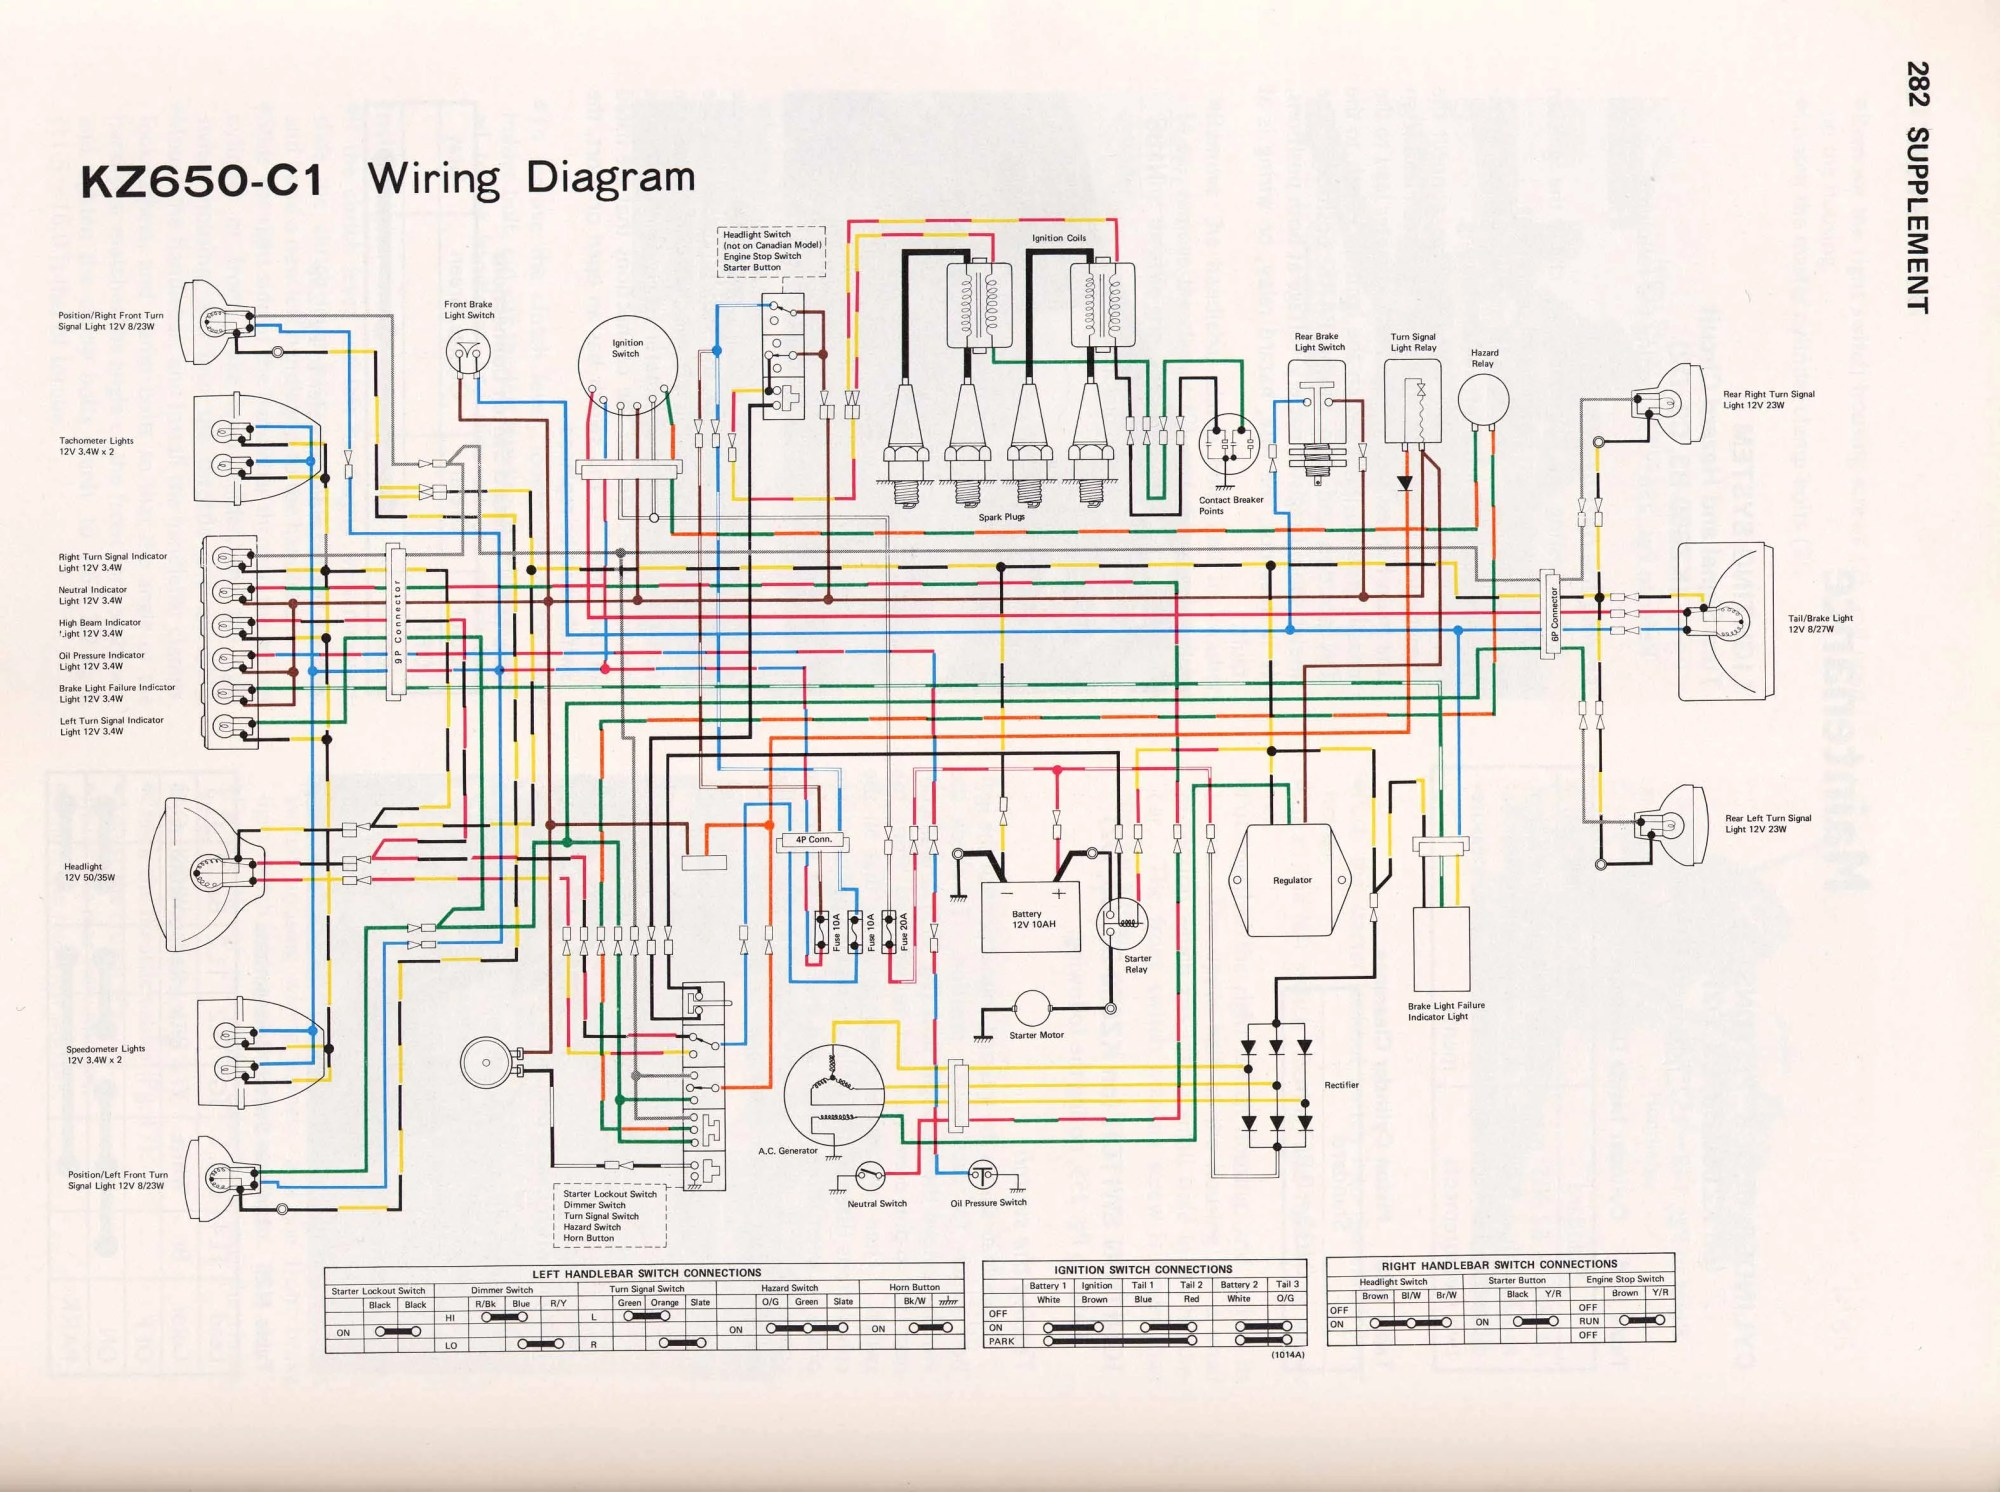 hight resolution of xs1100 wiring diagram schematic wiring diagrams 2004 yamaha xs1100 wiring diagram 1979 yamaha xs1100 wiring diagram